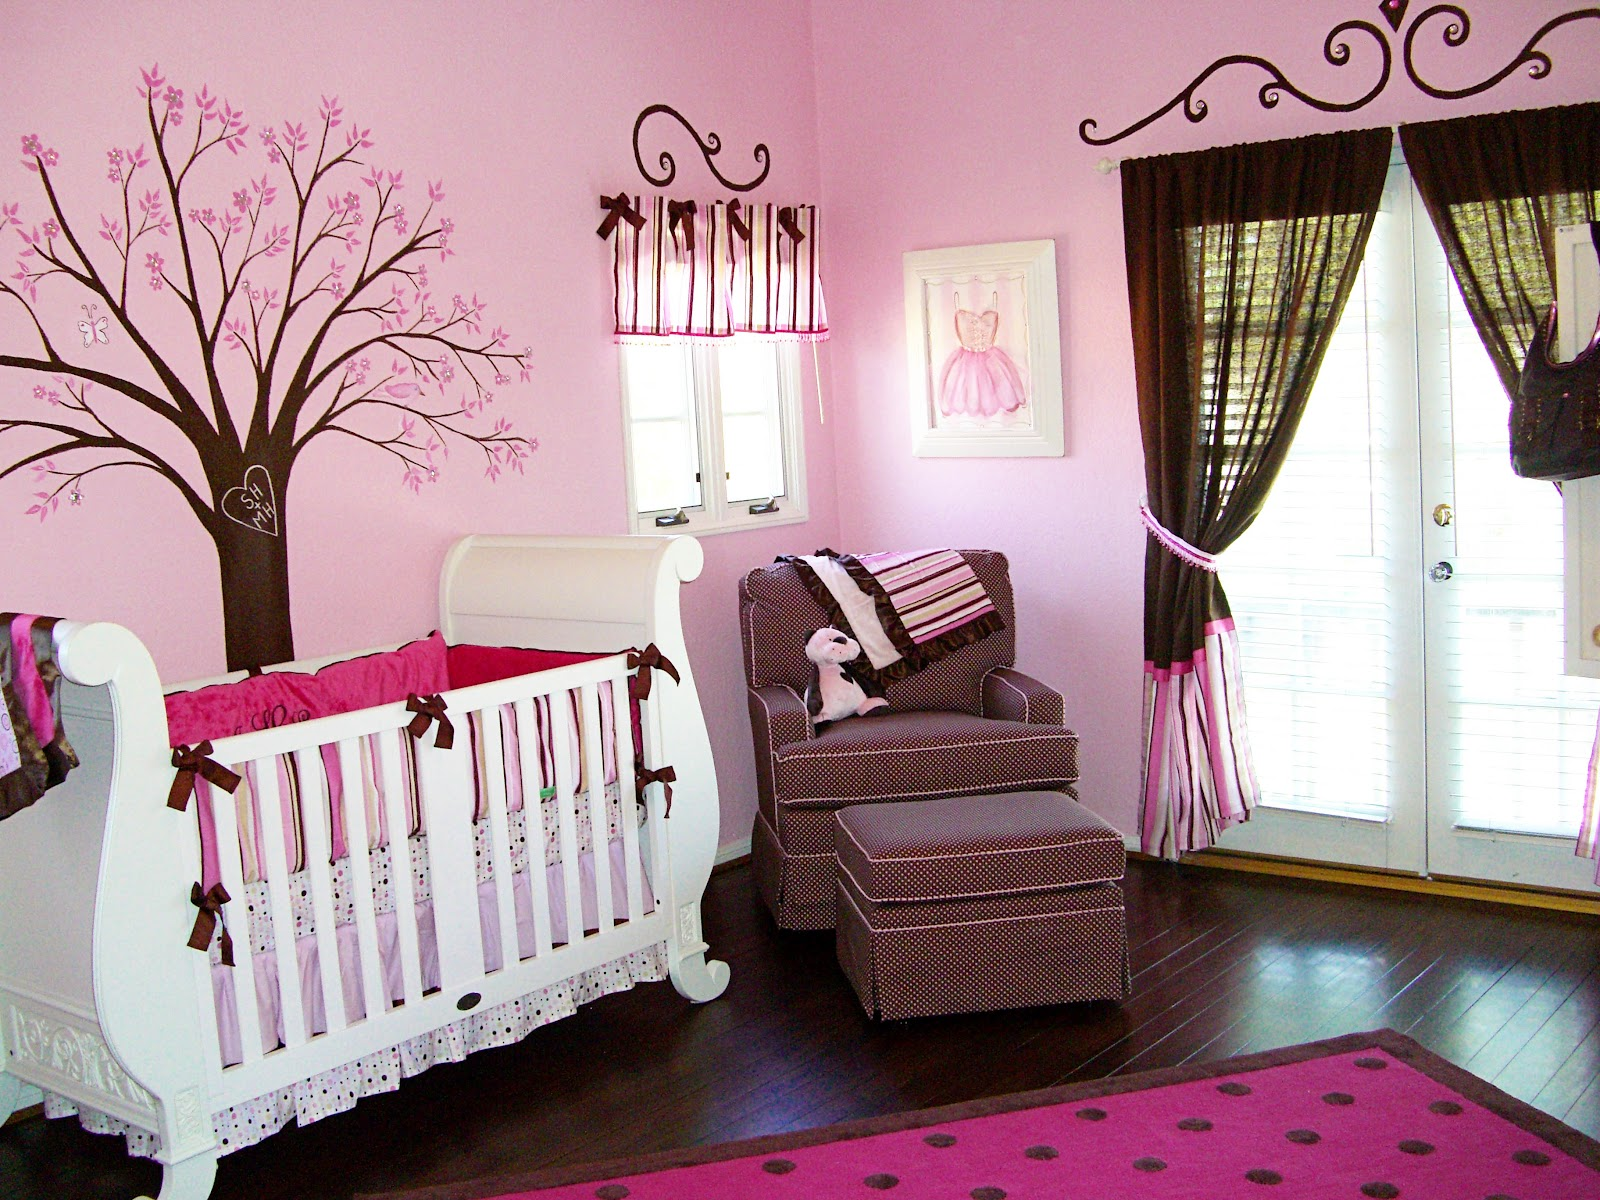 Ideas For Decorating A Nursery Full Pink Color Girl Baby Room Ideas Decorate